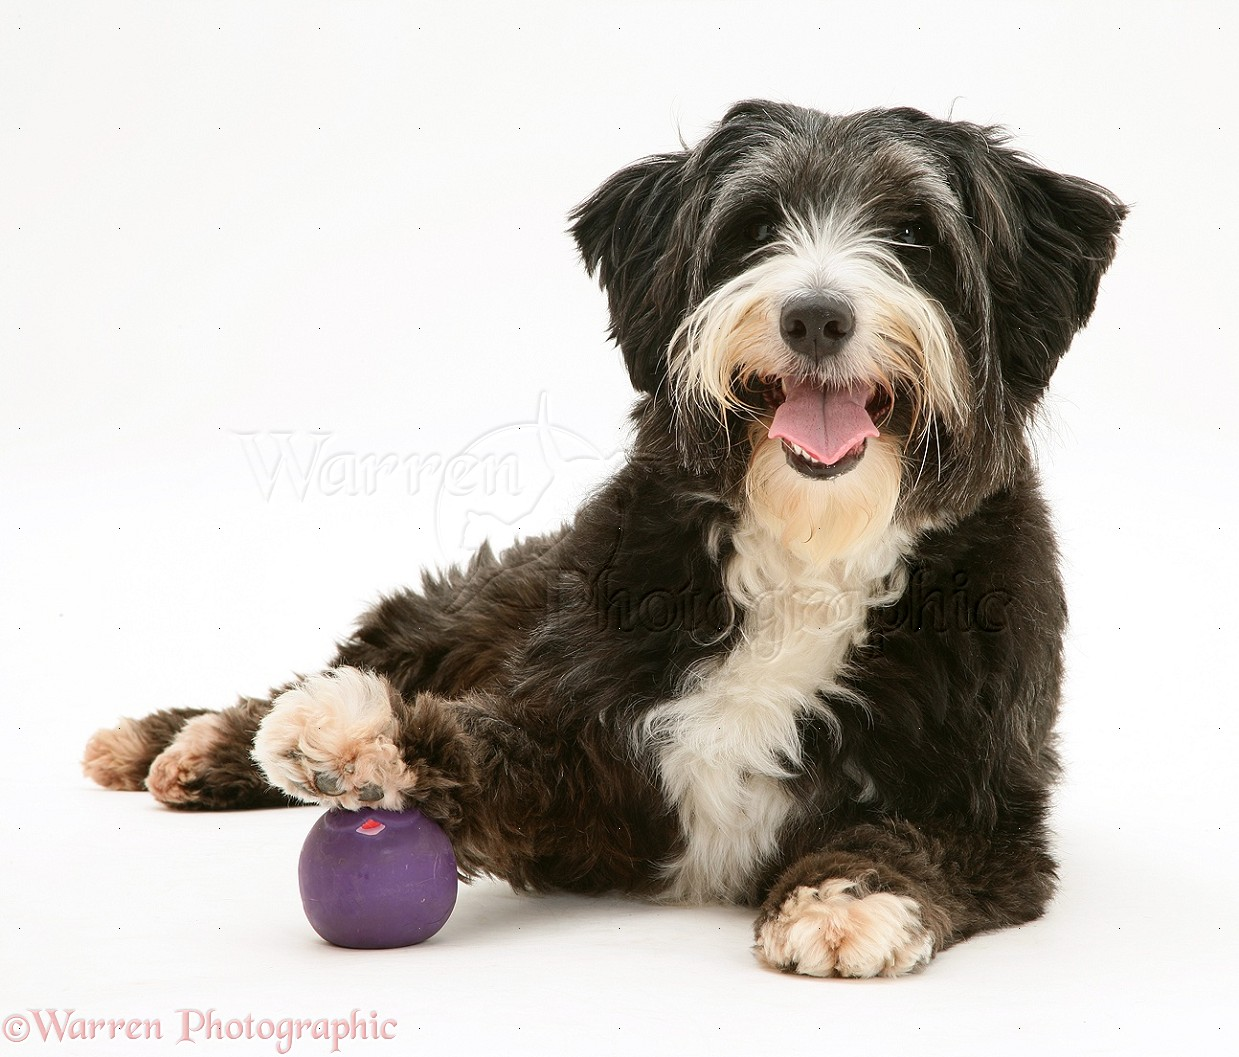 Shaggy Dog With Foot On Ball Photo Wp12090